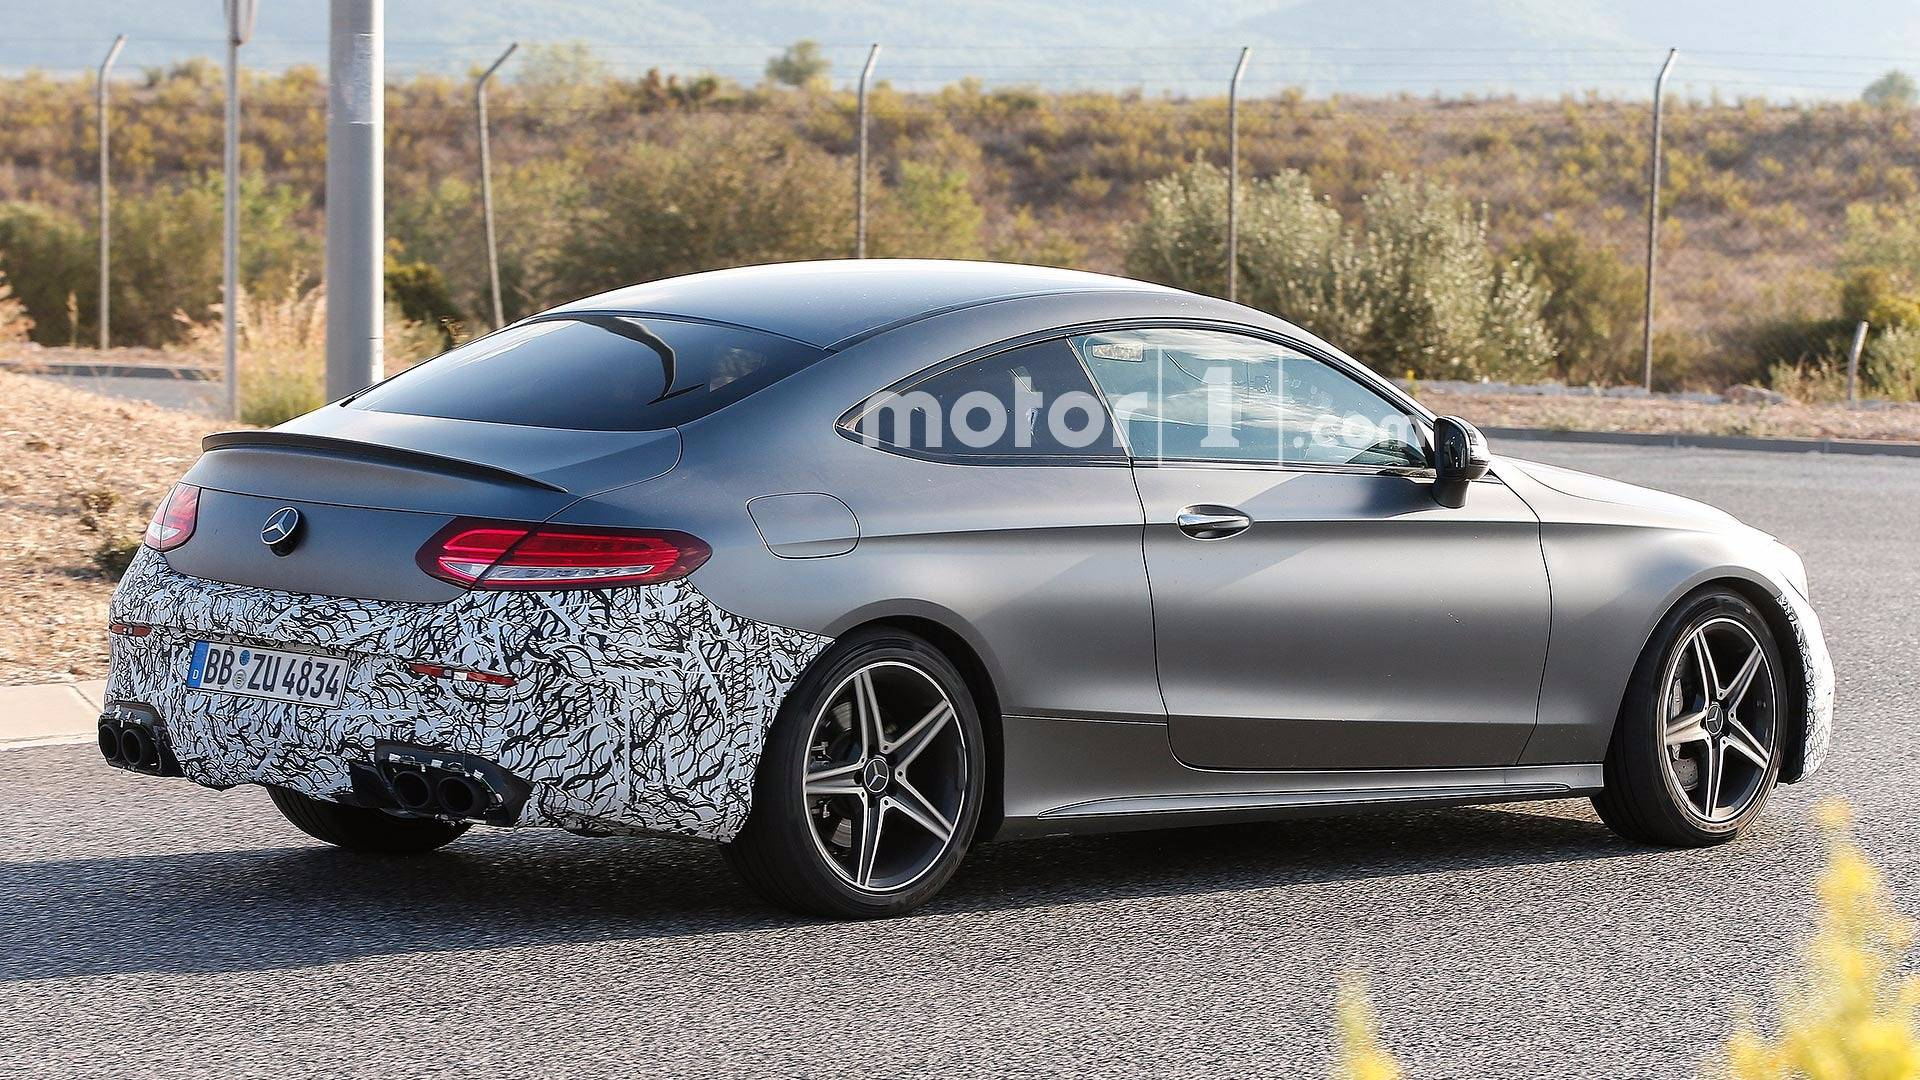 mercedes amg c43 coupe spy shots during testing a mercedes benz fan blog. Black Bedroom Furniture Sets. Home Design Ideas